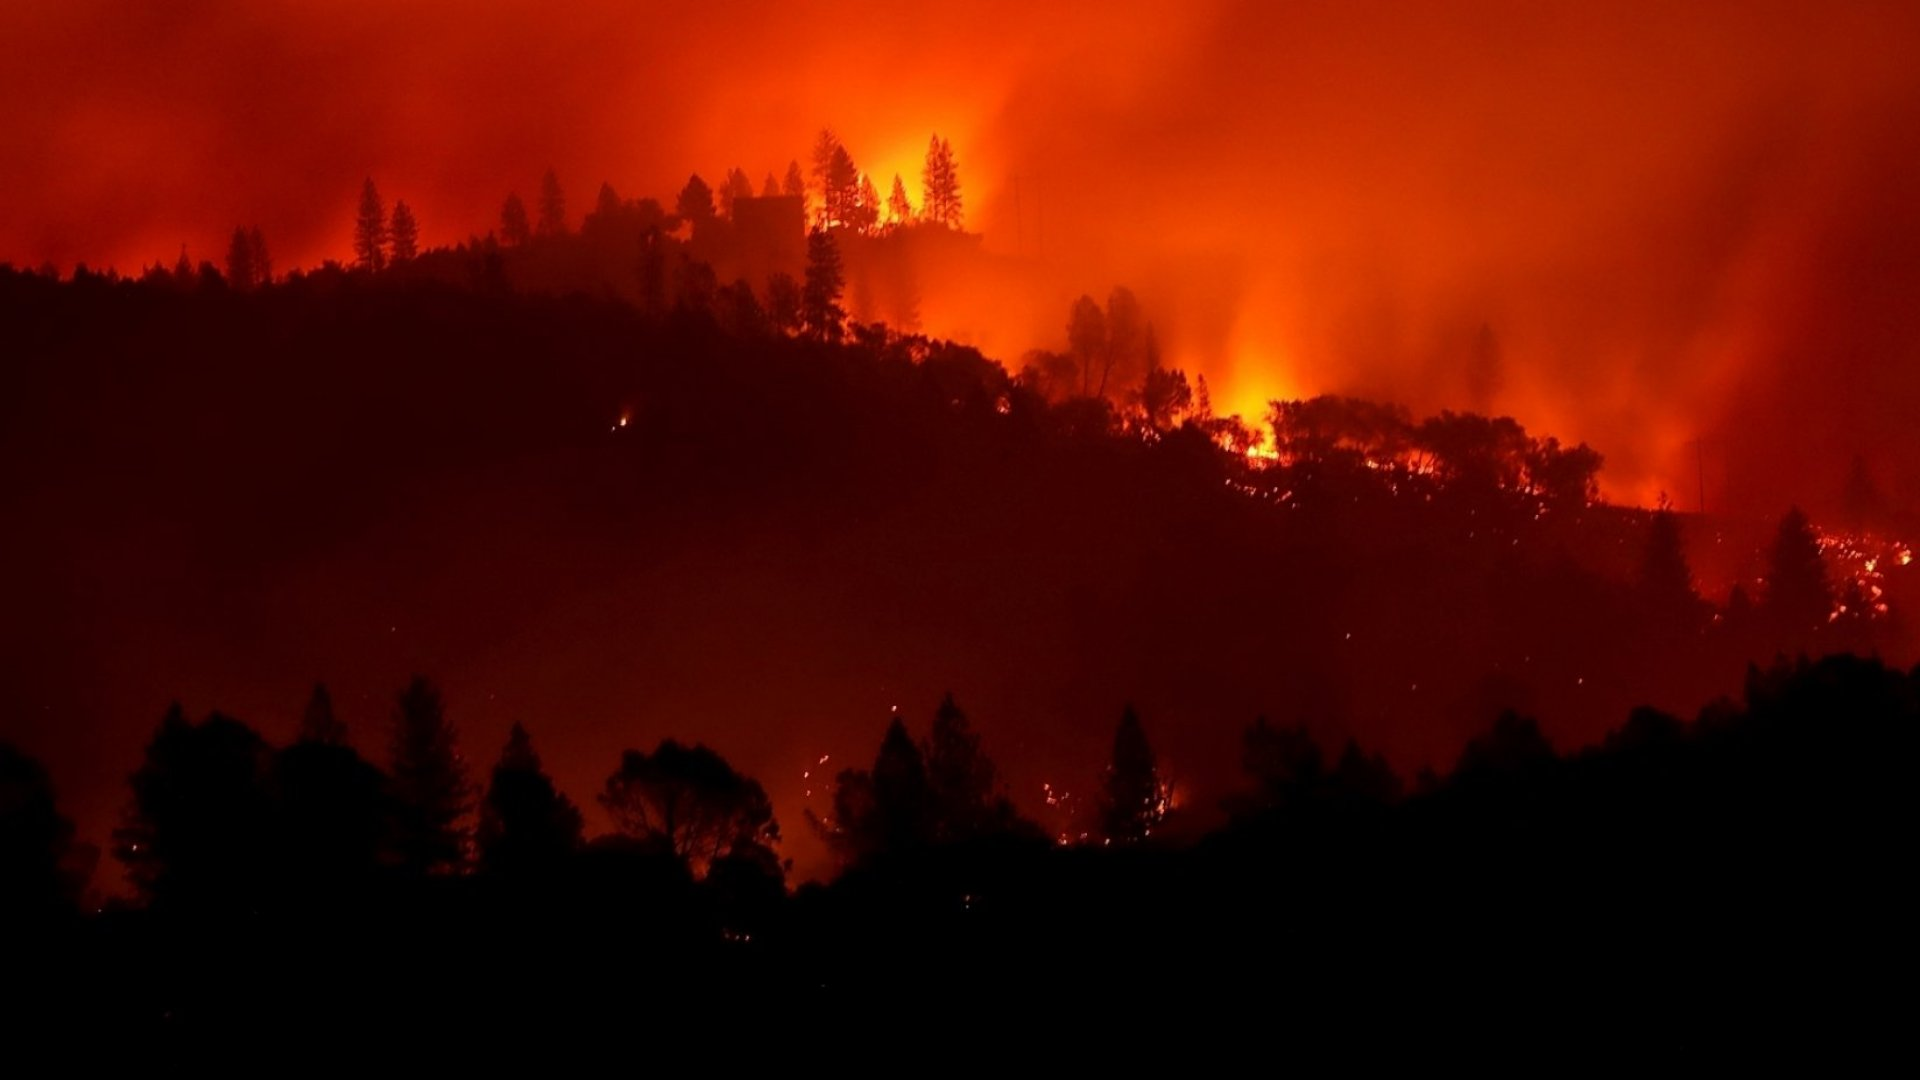 The Camp Fire burning in the hills on November 10, 2018 near Ororville, California.